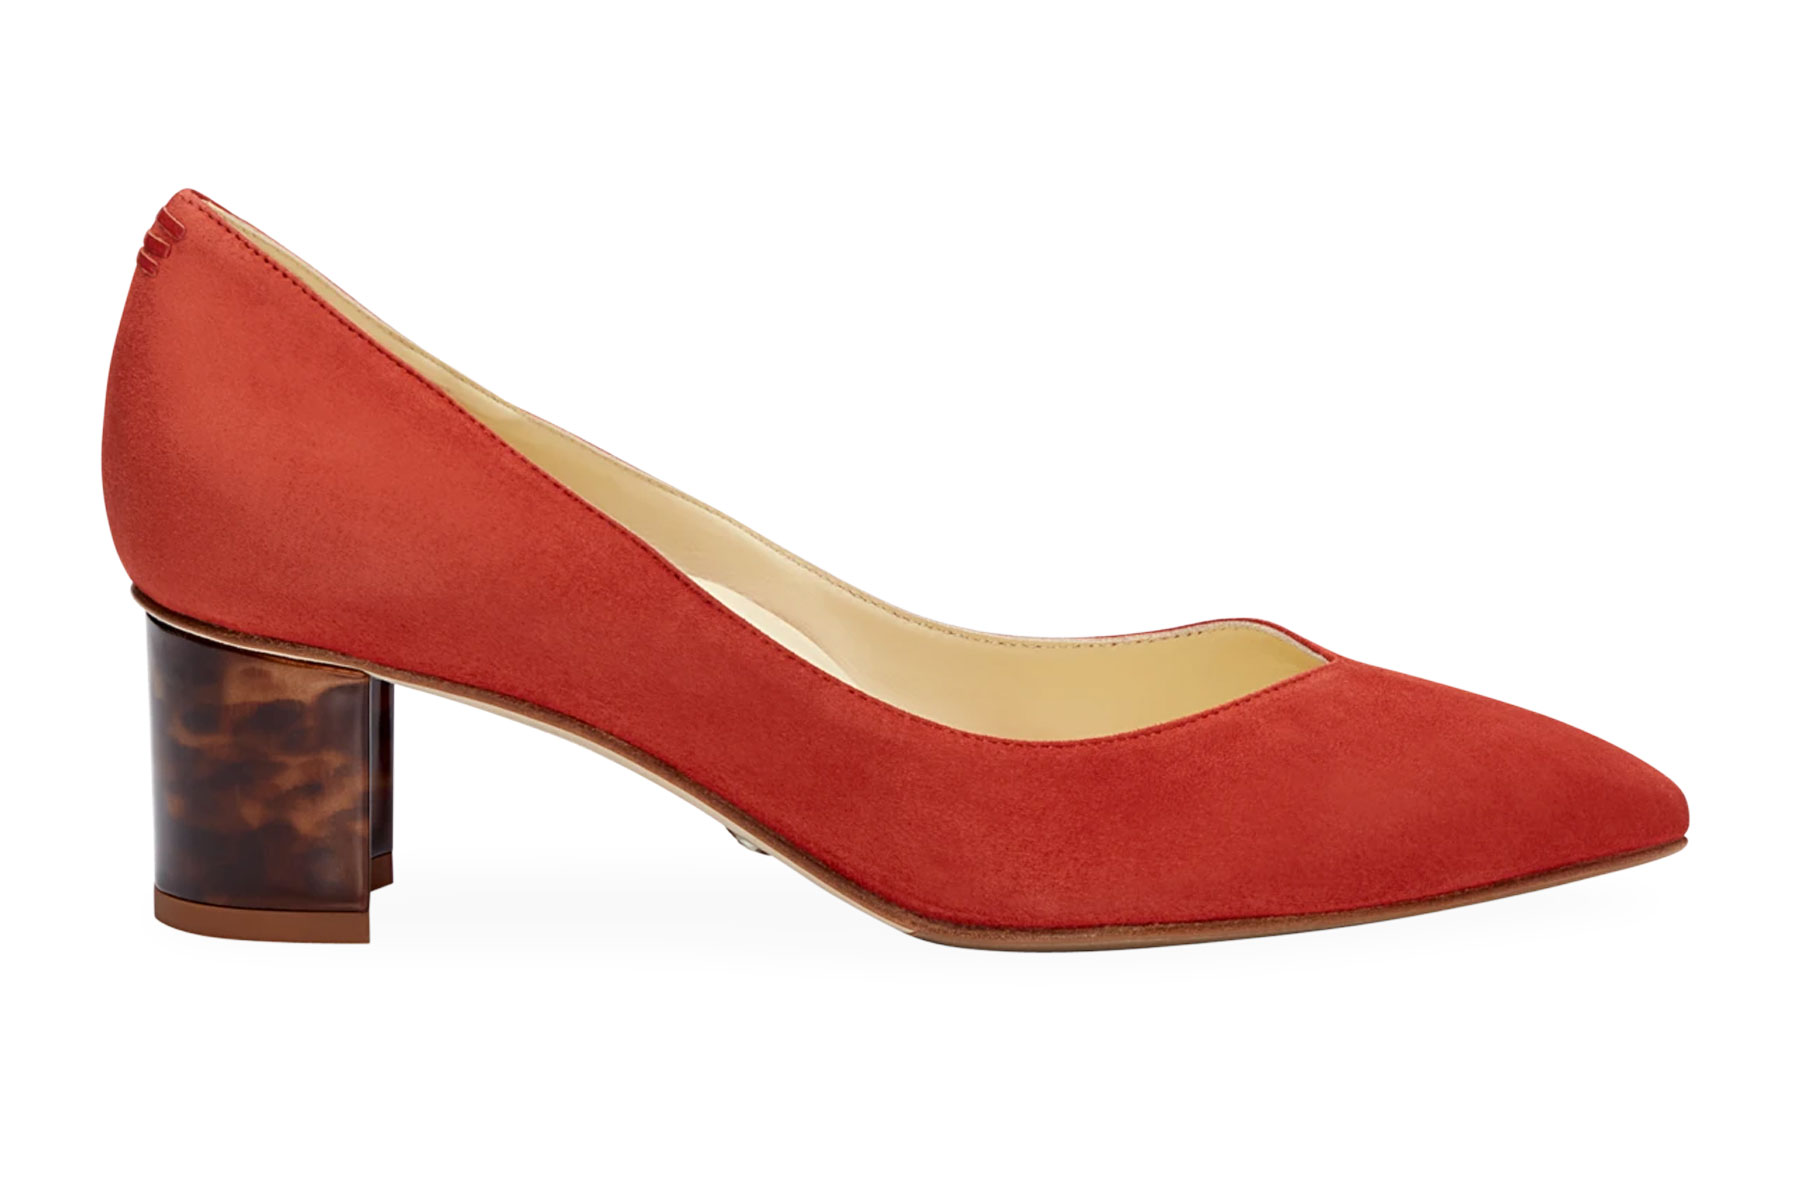 Red suede pump heel